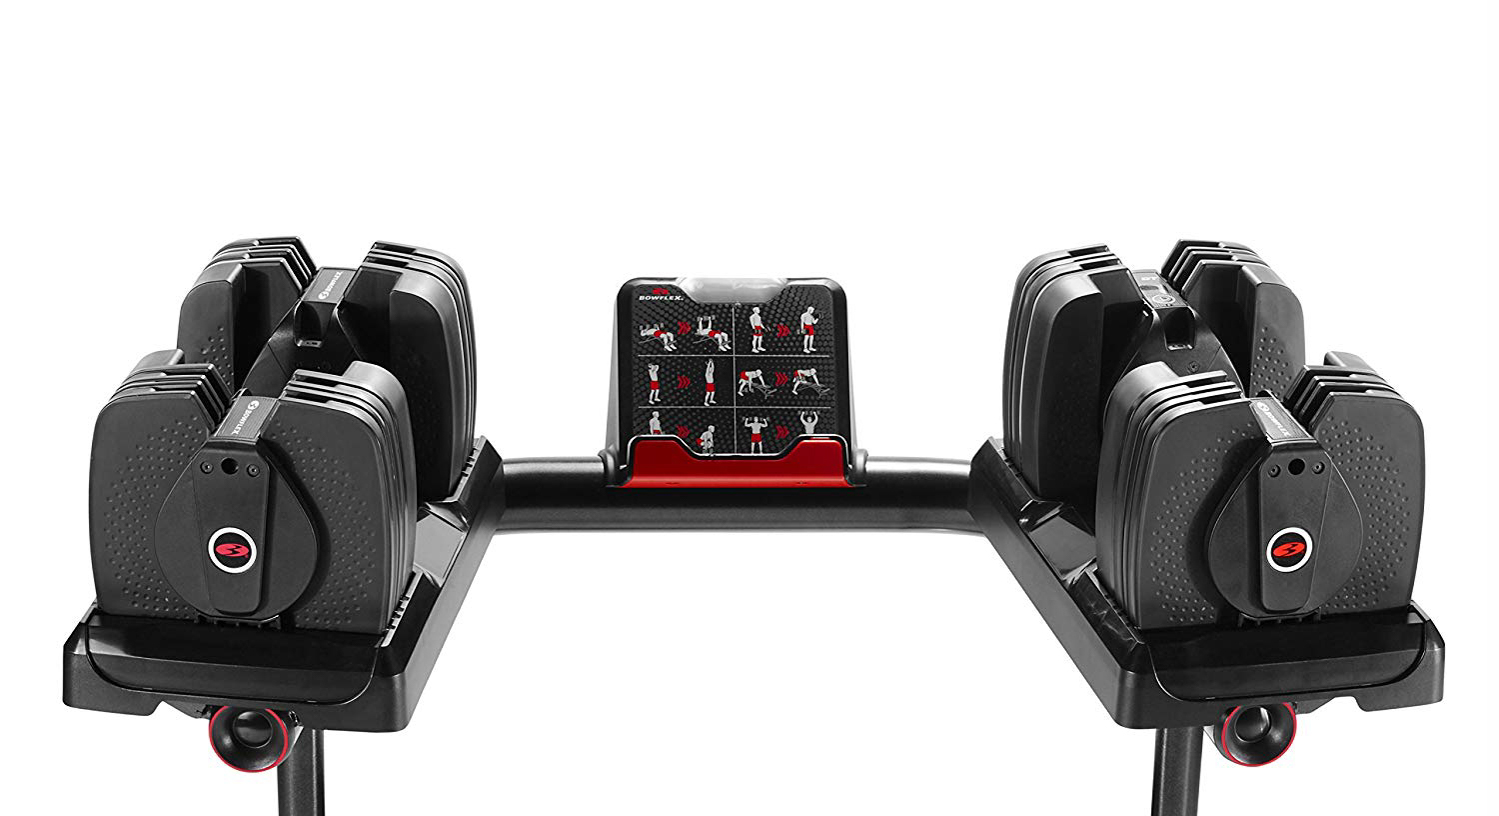 The Bowflex SelectTech 560 Dumbbells adjust from 5 to 60 sounds and communicate with smart devices through Bluetooth. Image: BowFlex.